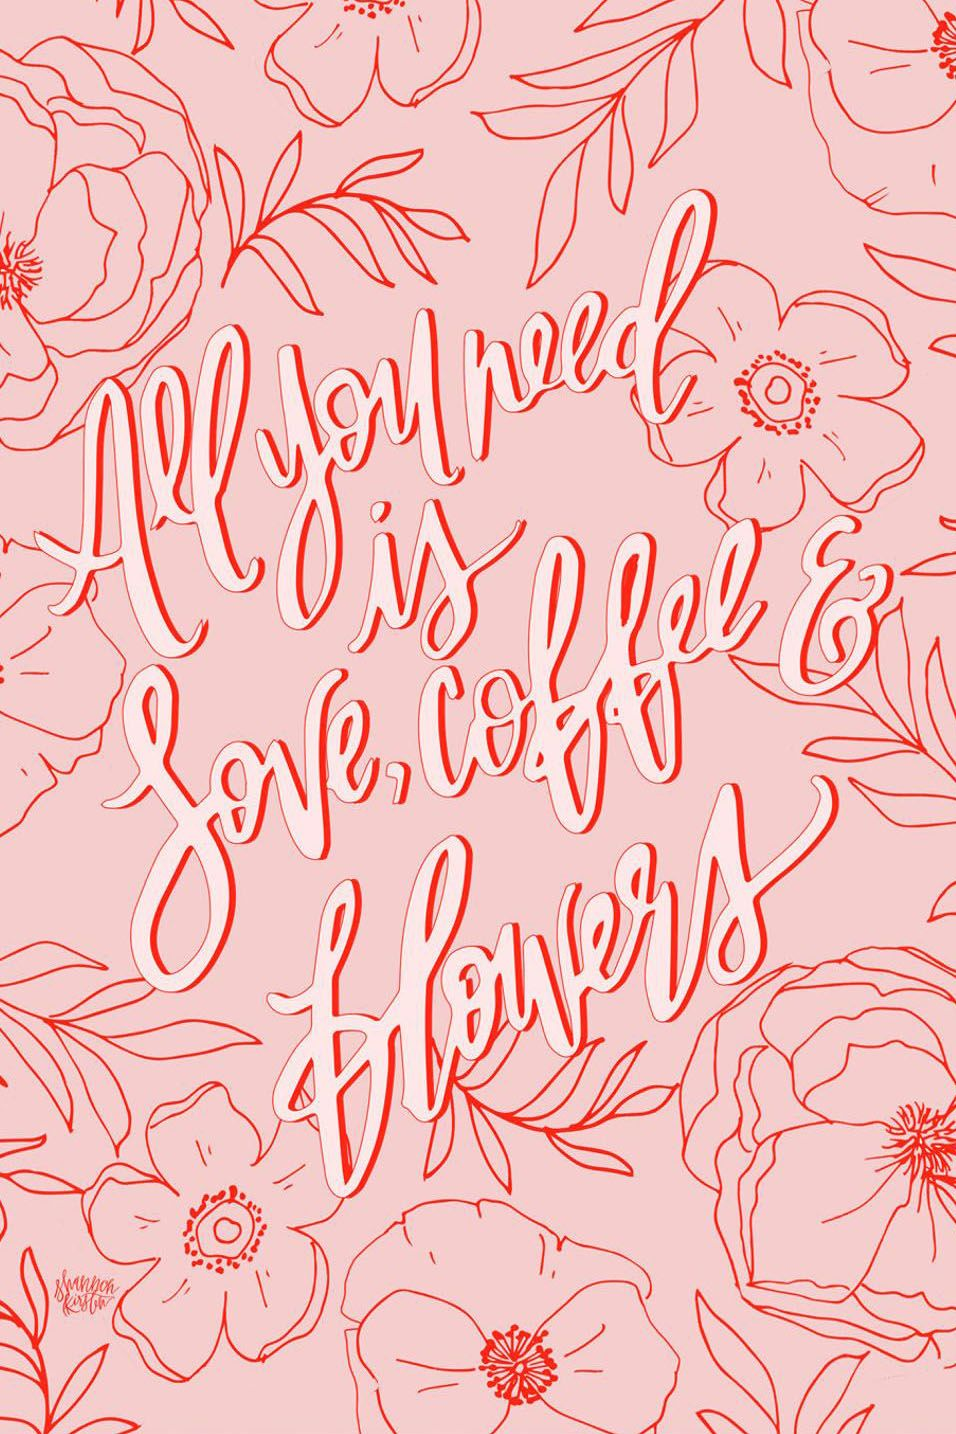 Artwork for the coffee and flower lover. Perfect for a home office, kitchen, or dorm room. This illustrated artwork can go just about anywhere in your home for a pop of color with a sweet message.